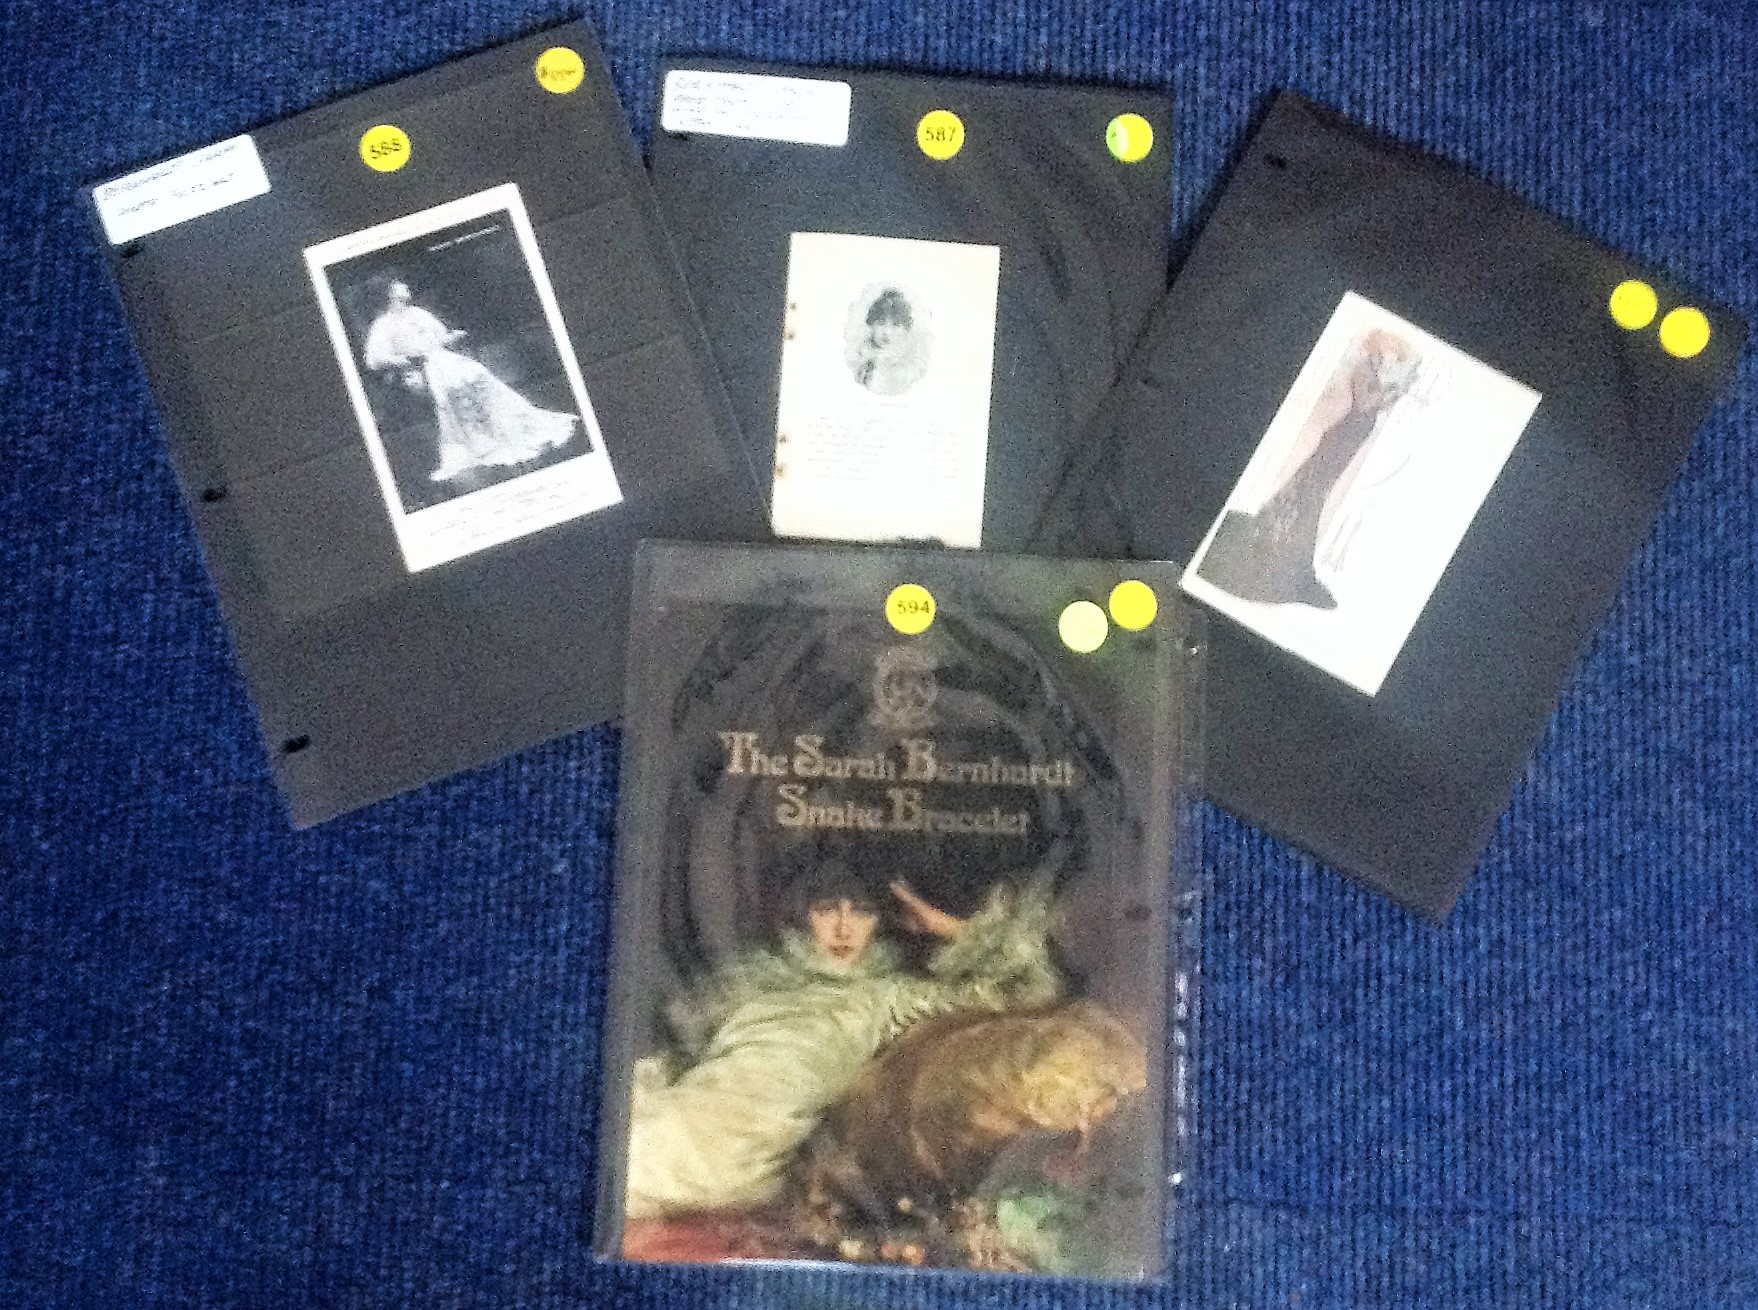 Lot 8 - Sarah Bernhardt collection. 22 or 23 October 1844 - 26 March 1923) was a French stage actress who